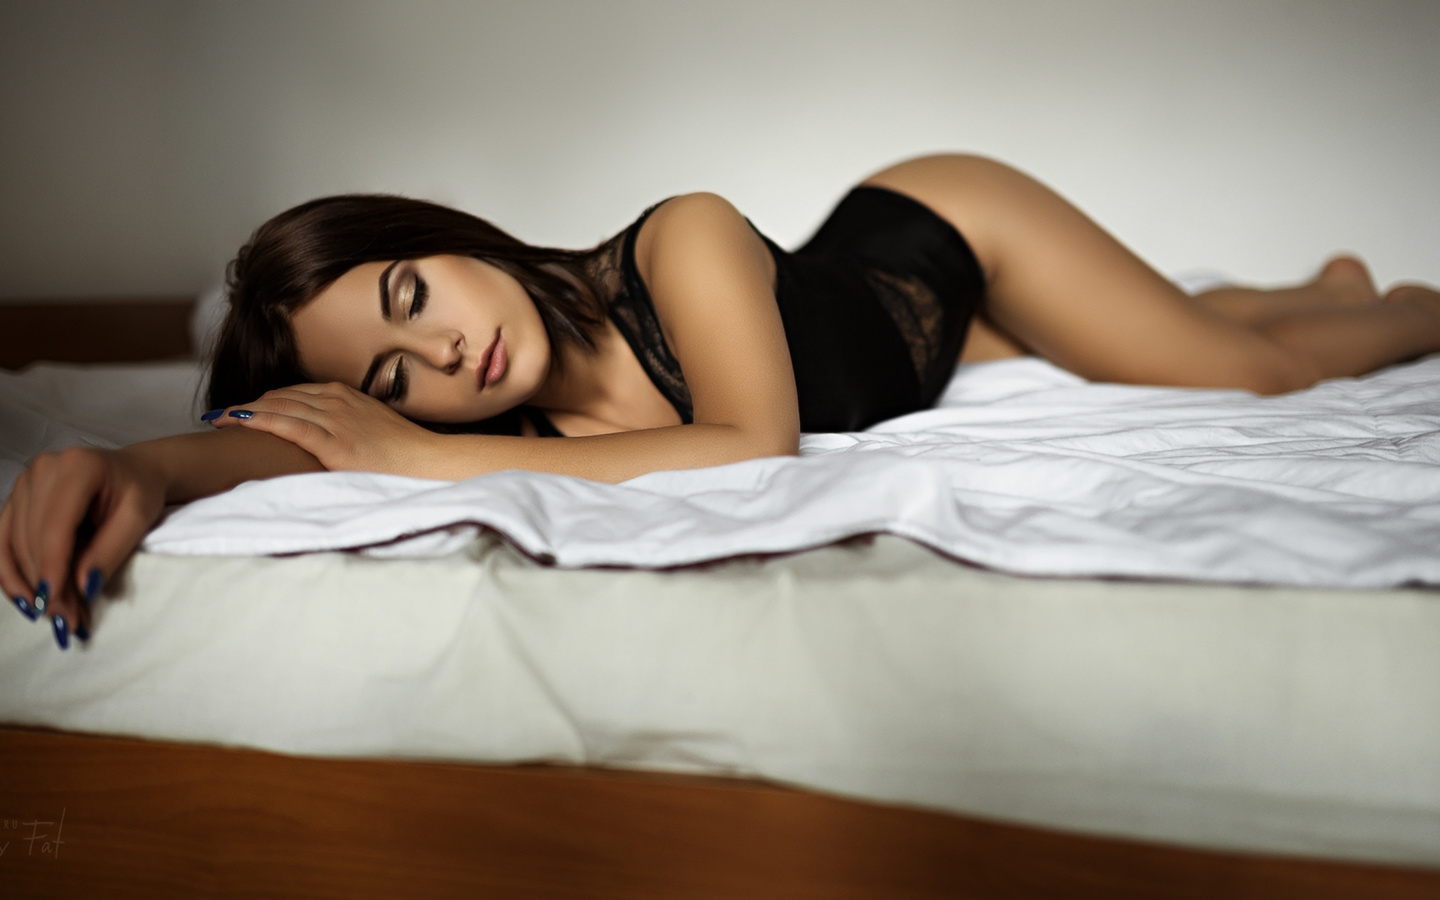 body-woman-in-bed-x-x-ass